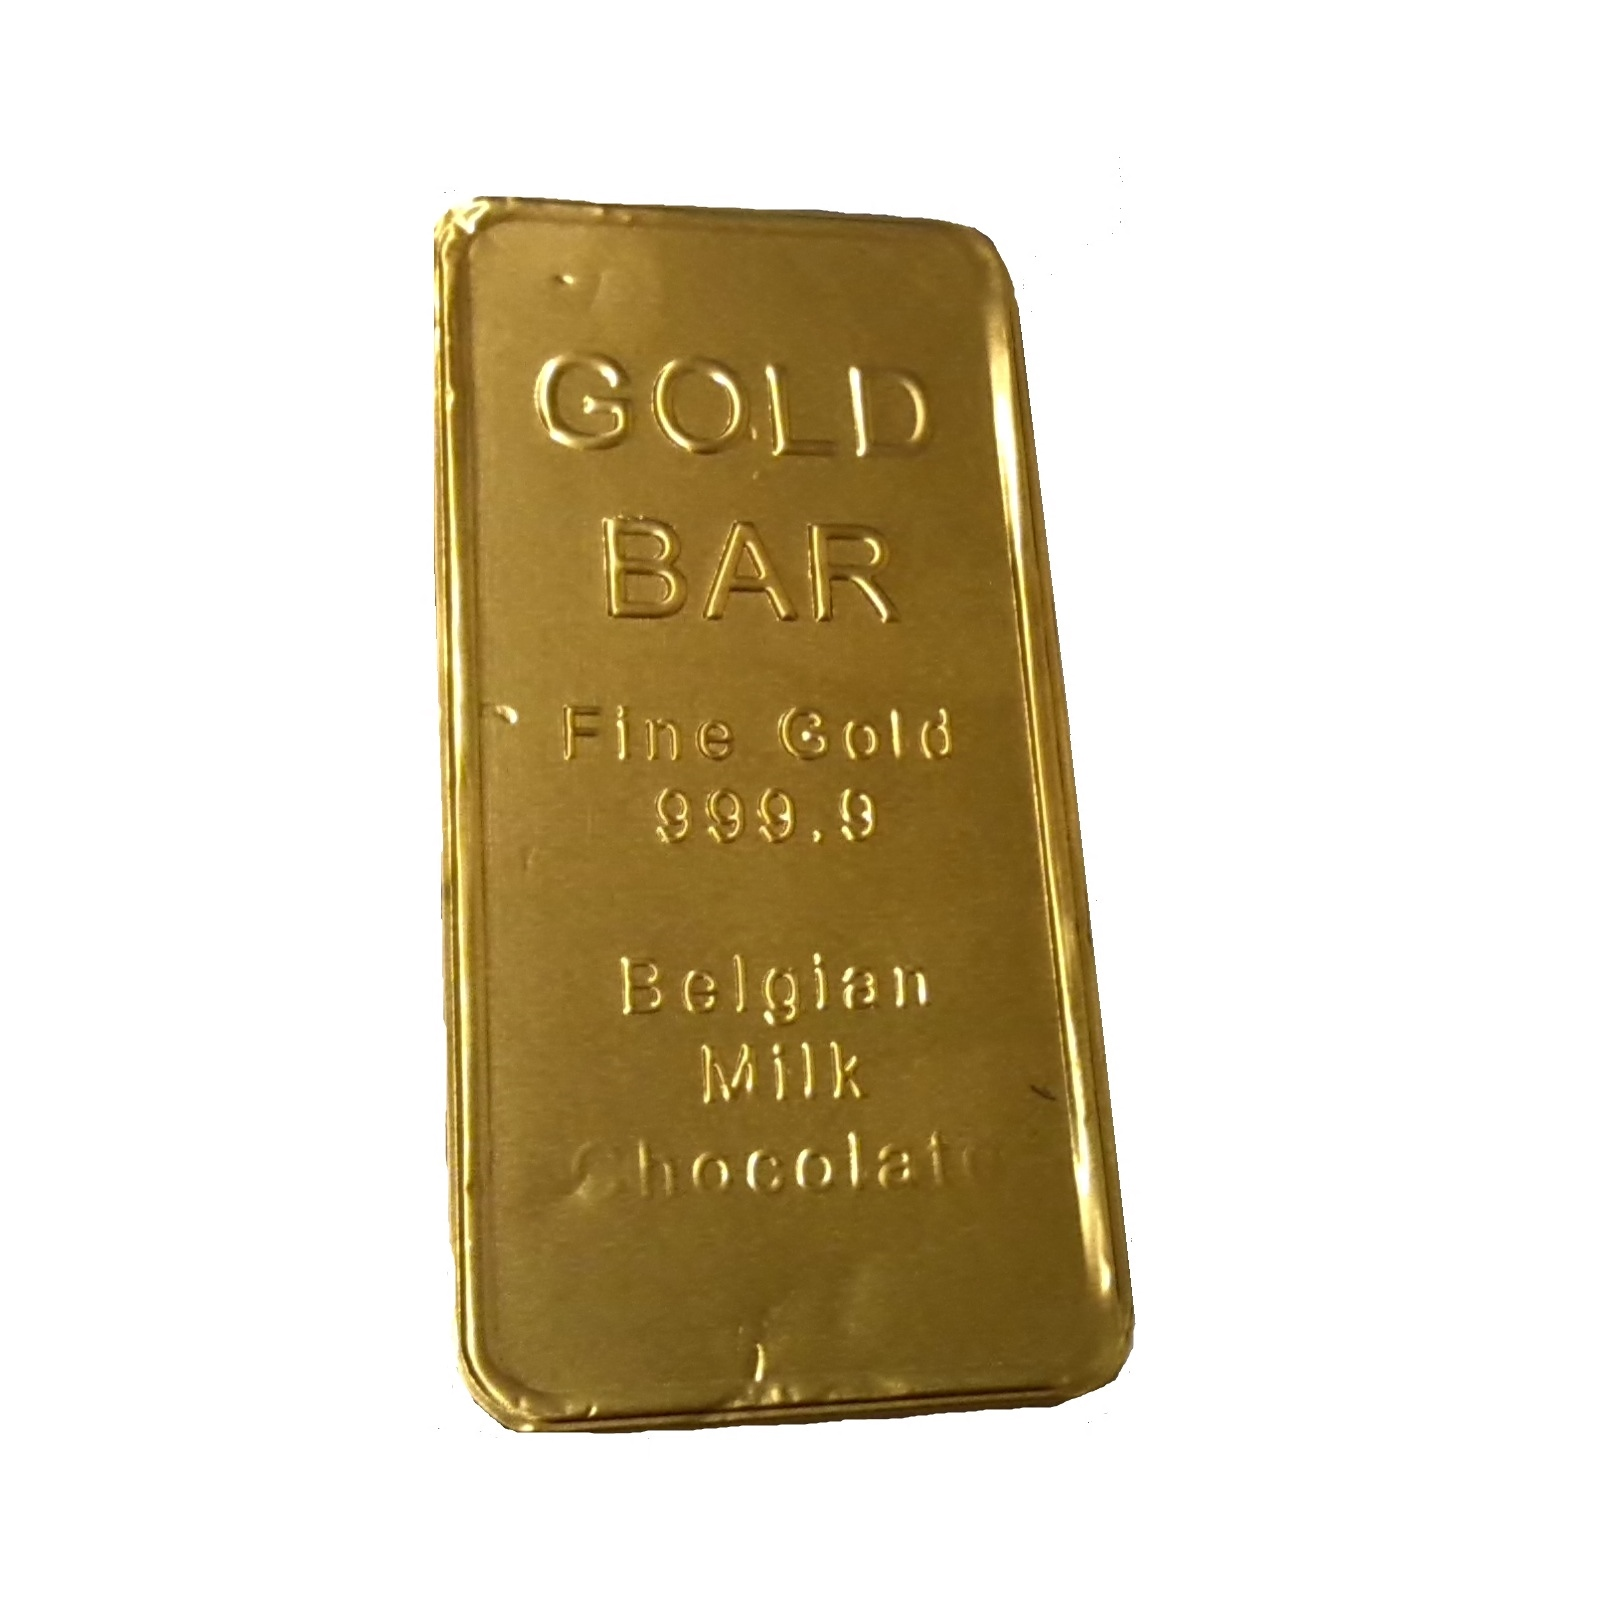 gold bar christian single women The brisbane women's club  actively campaigned for the pension and support for single mothers and today, through its charitable trust donations,.